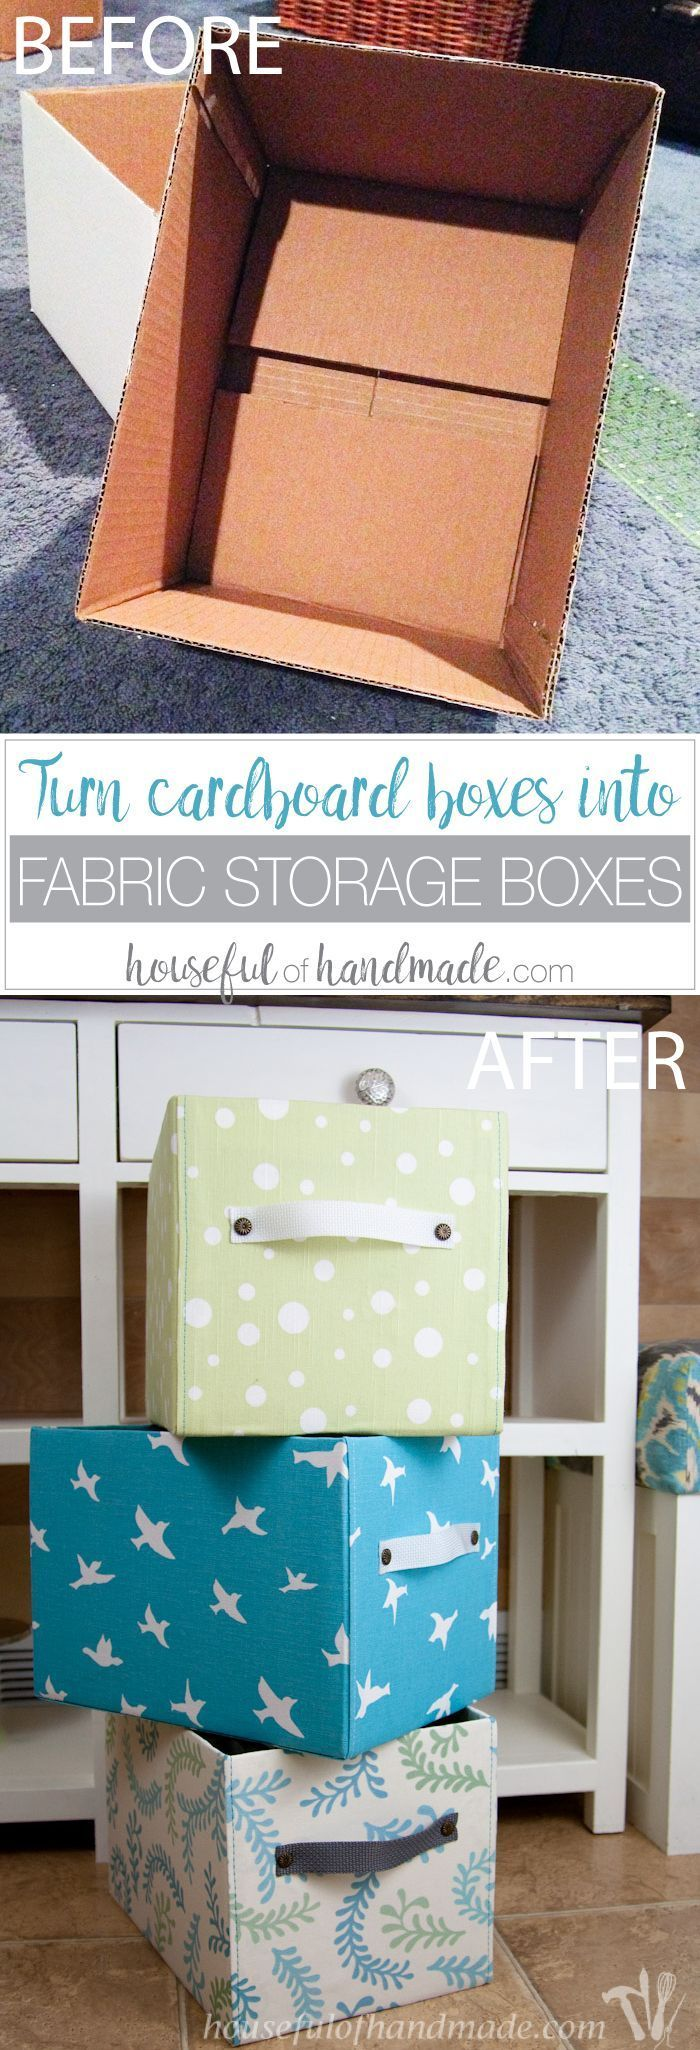 best good ideas images on pinterest good ideas home ideas and